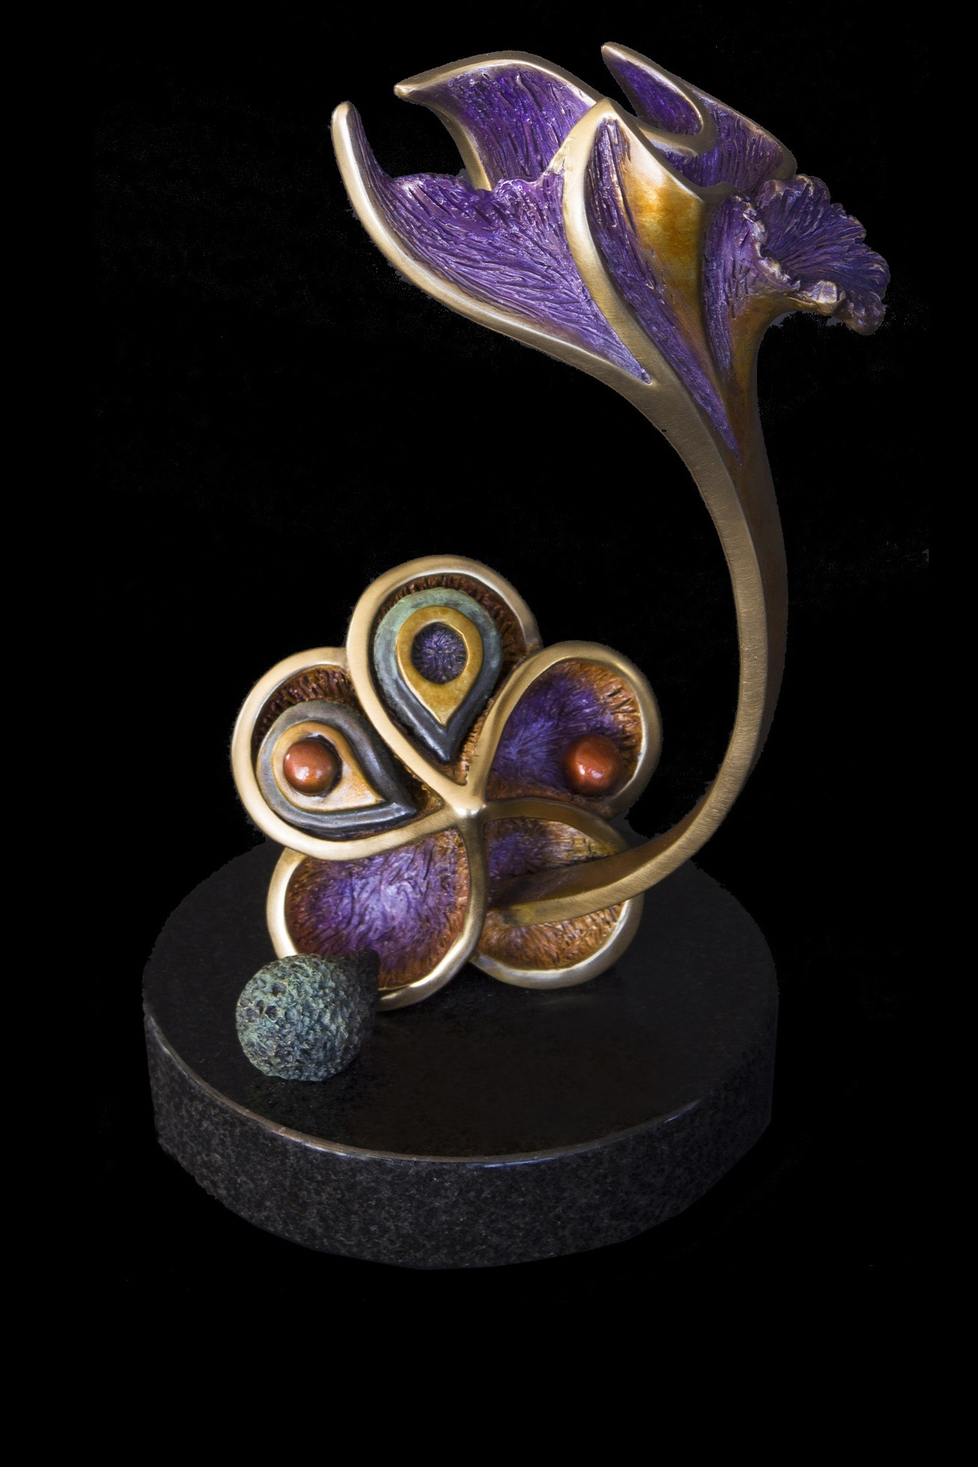 """Bursting Forth with Joy  ,Bronze,10.5"""" H x 6.5"""" W x 5.5"""" D,Edition of 85: There are times in our lives when we must consciously choose tocrack openthe protective shell we shield our seed of joy in and allowthat seed to breakfree, take root, and then burst forth and bloom in all its glory."""